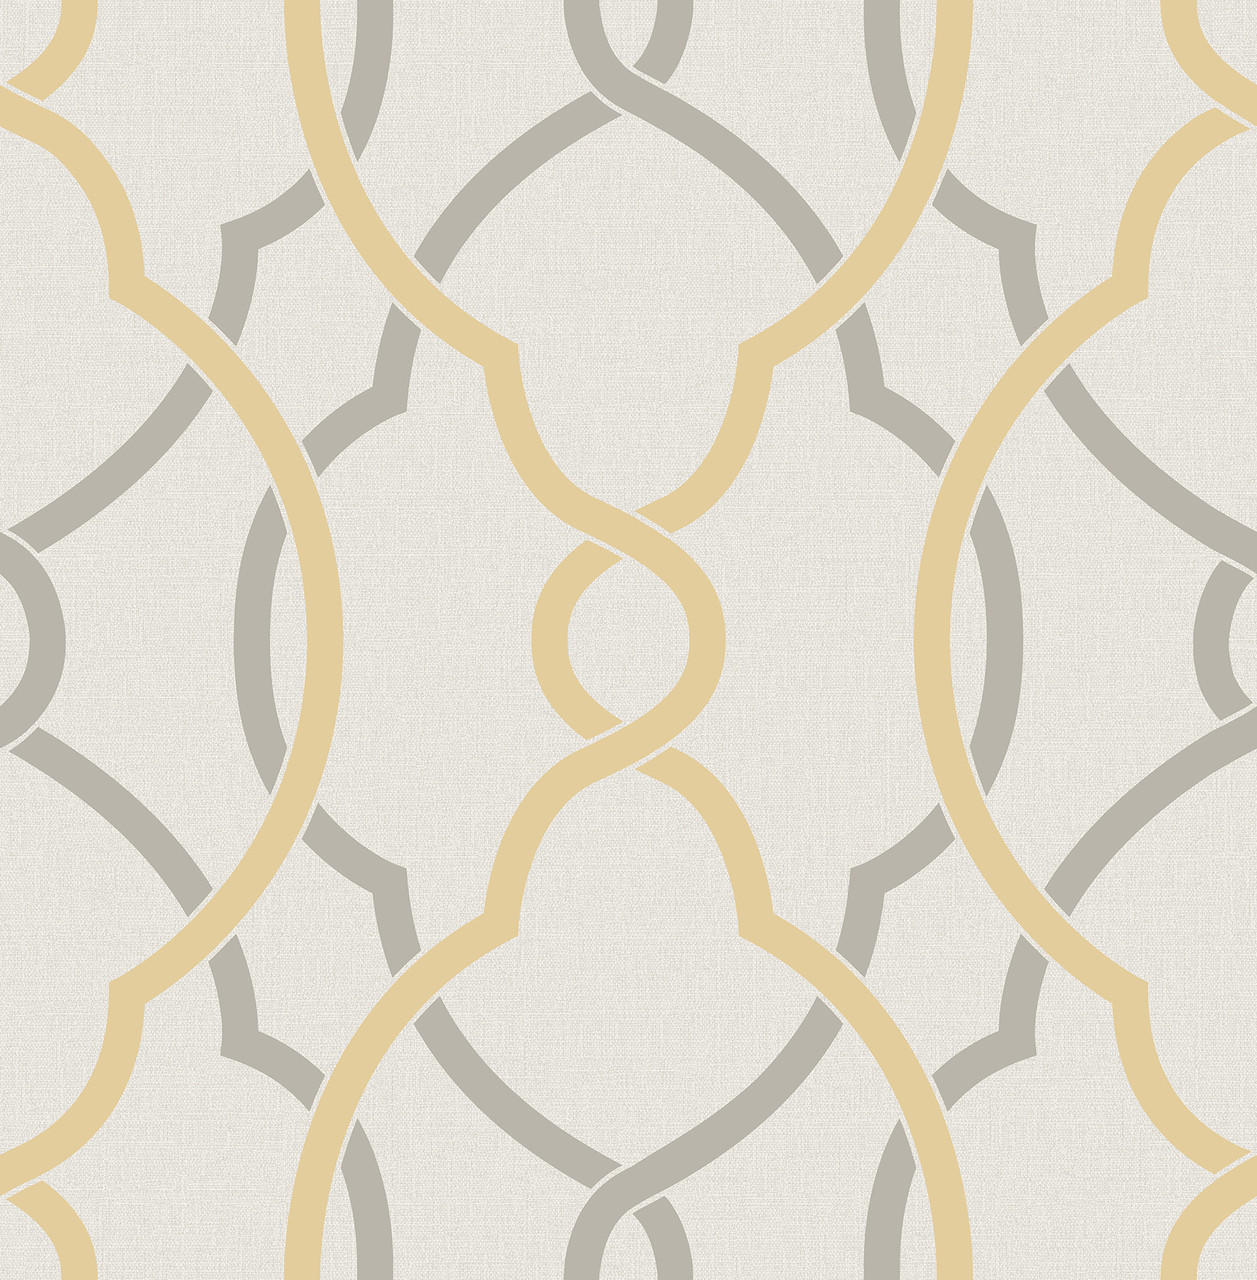 sausalito yellow lattice 2697 22620 wallpaper by brewster. Black Bedroom Furniture Sets. Home Design Ideas